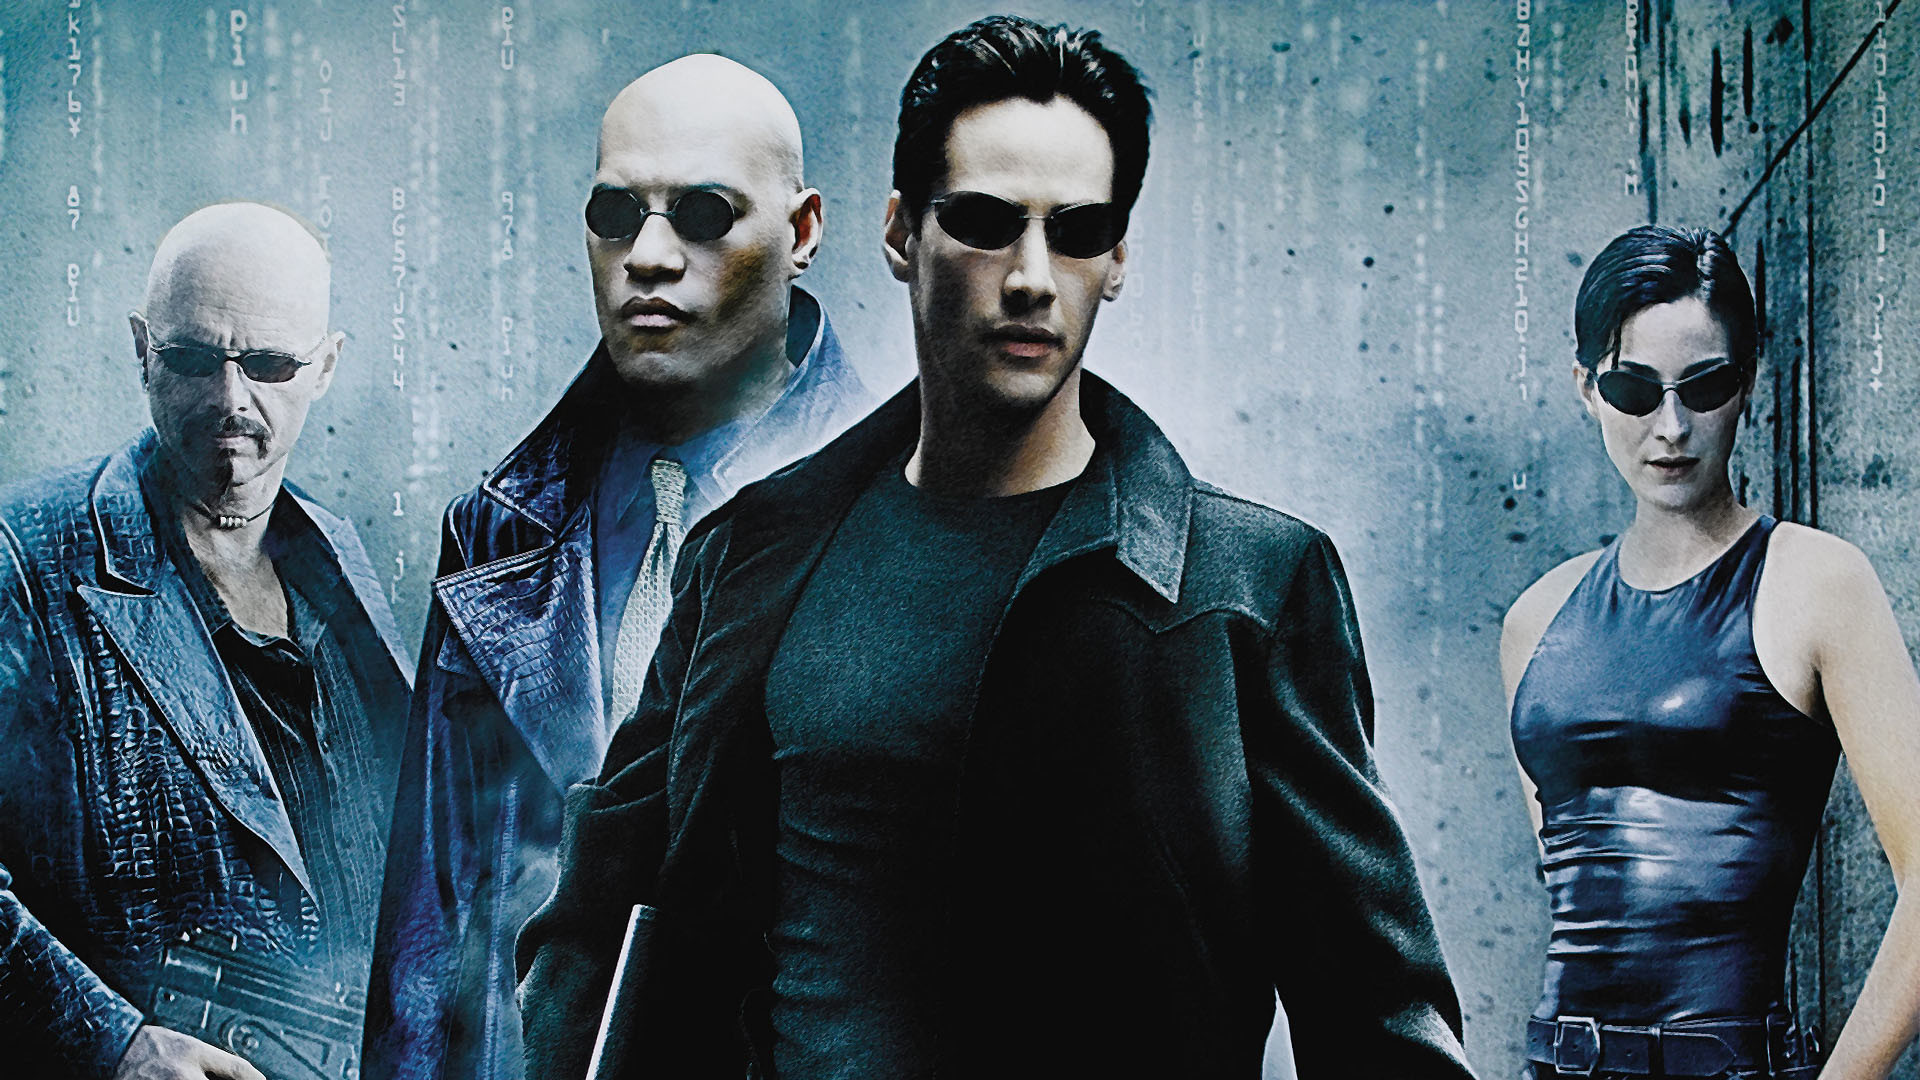 Animated <b>Matrix</b> Code <b>Wallpaper</